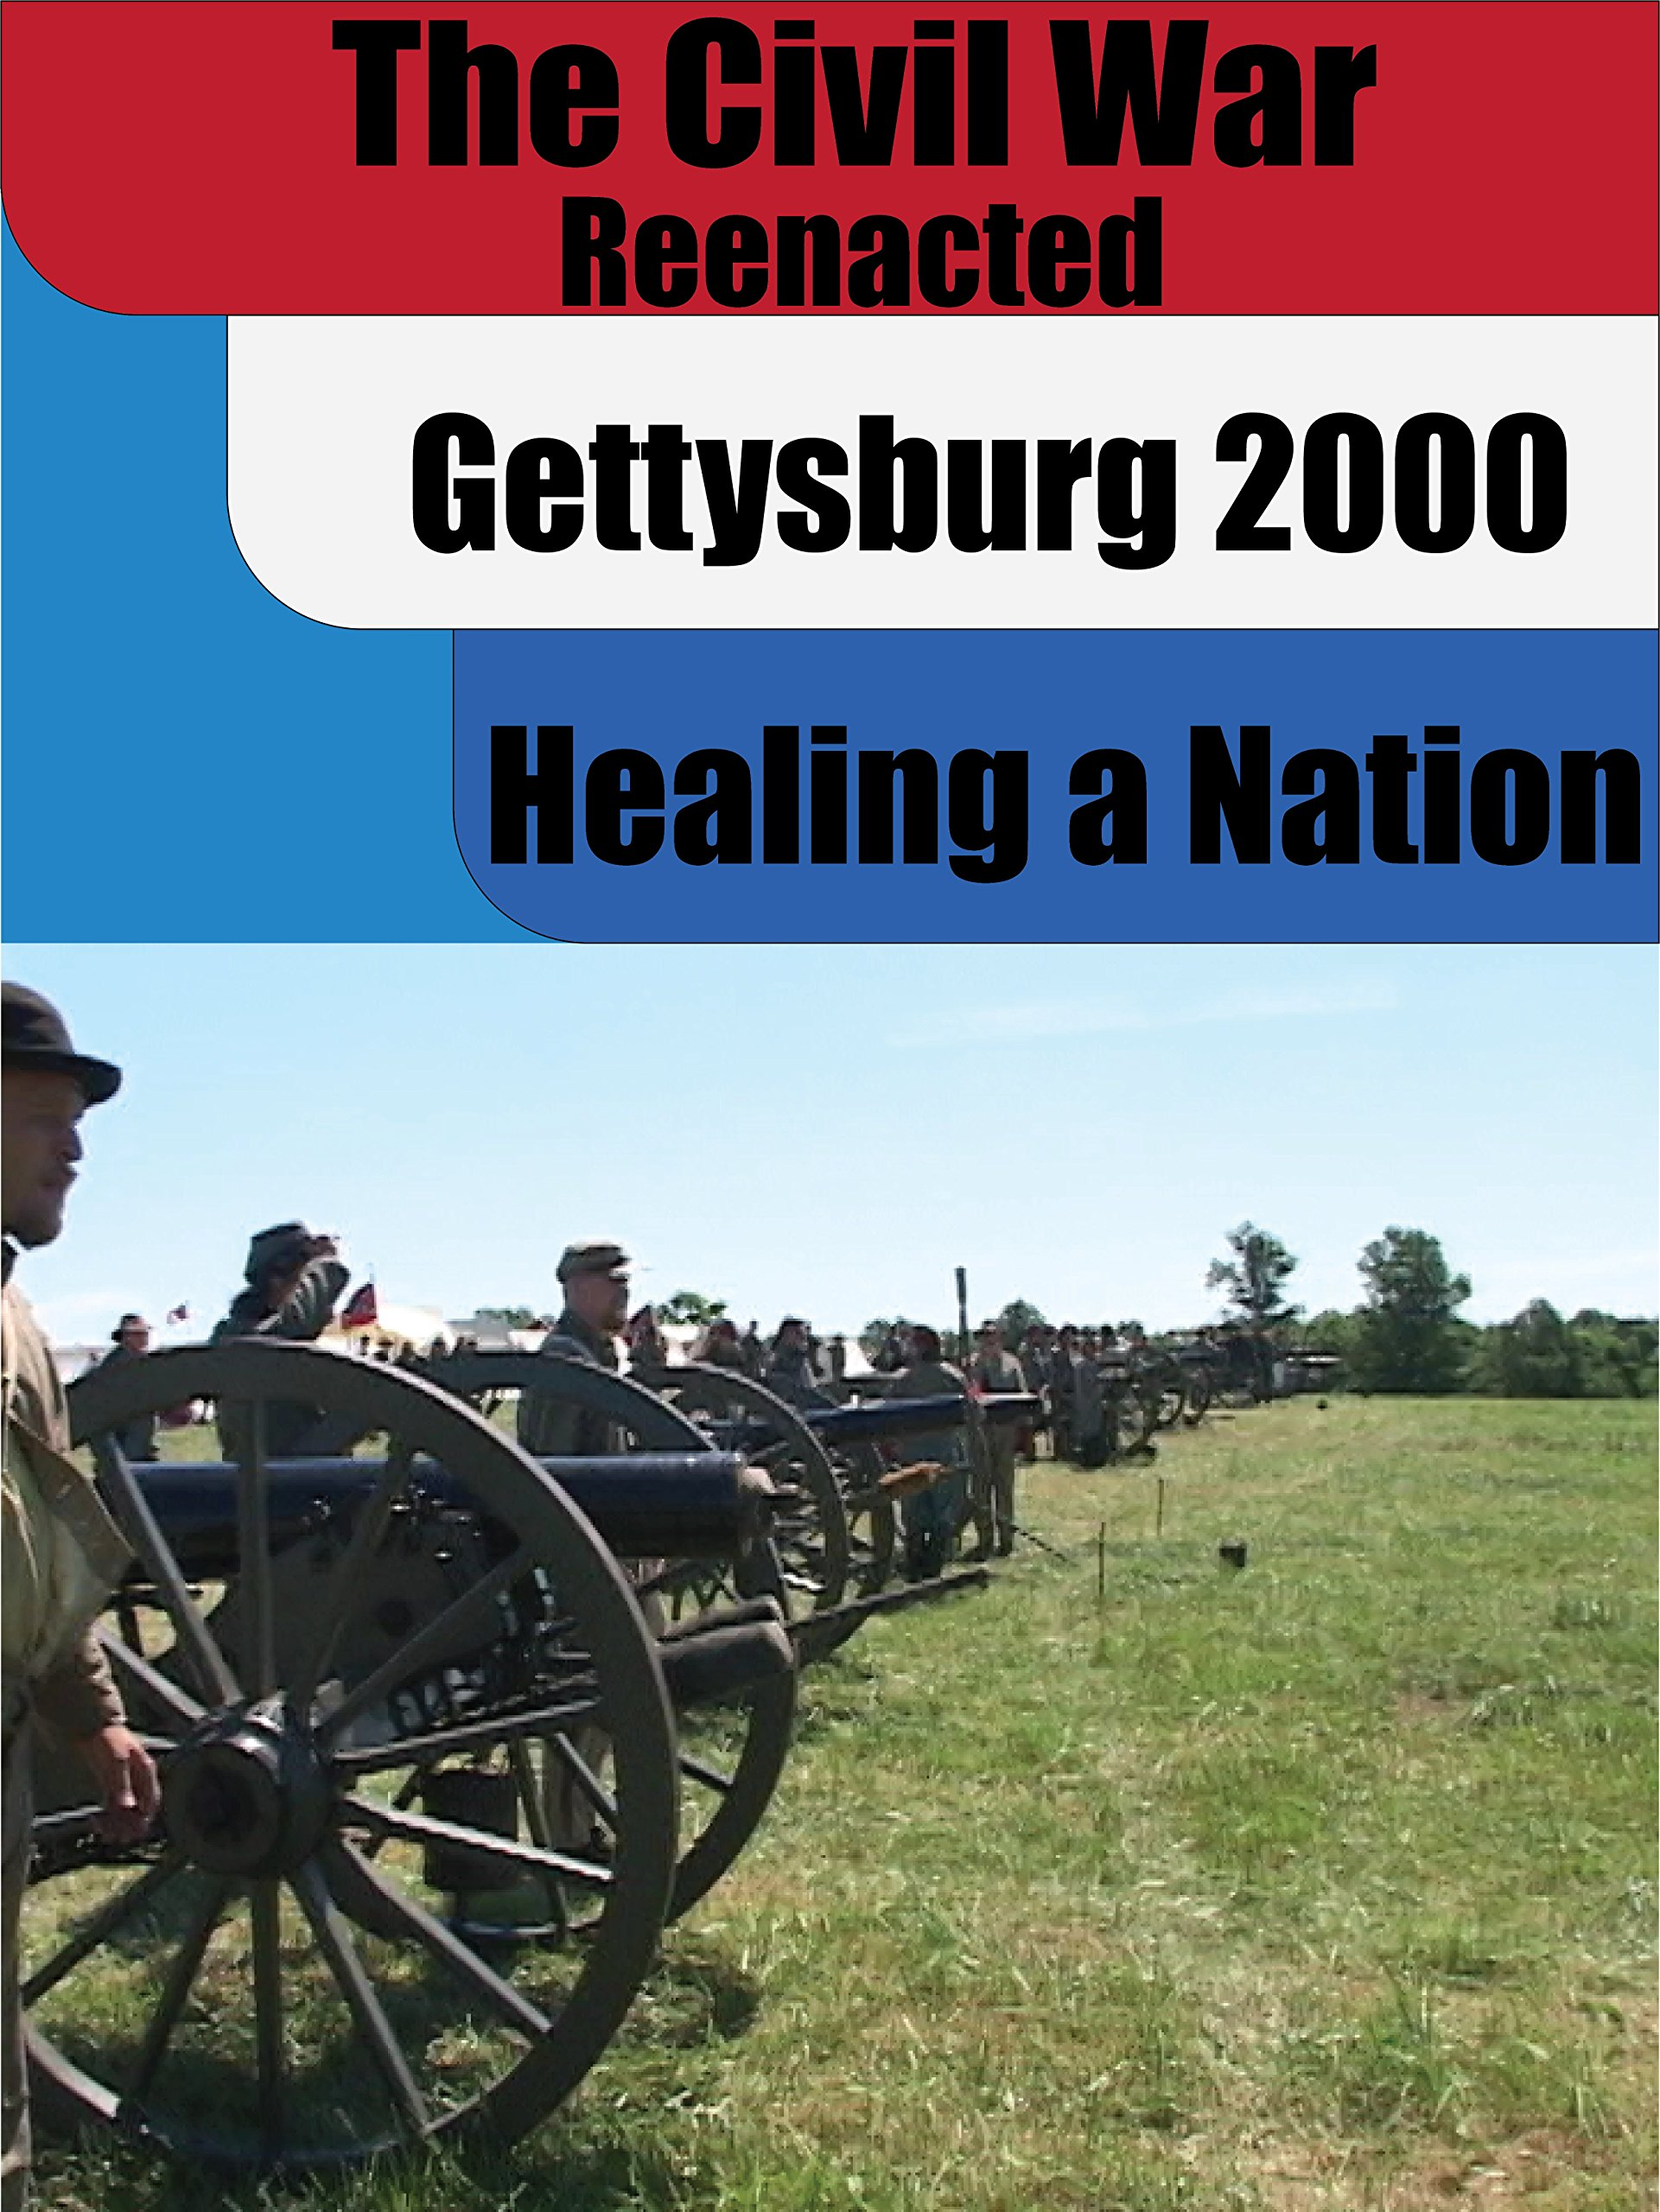 The Civil War Reenacted: Gettysburg Healing of a Nation on Amazon Prime Video UK